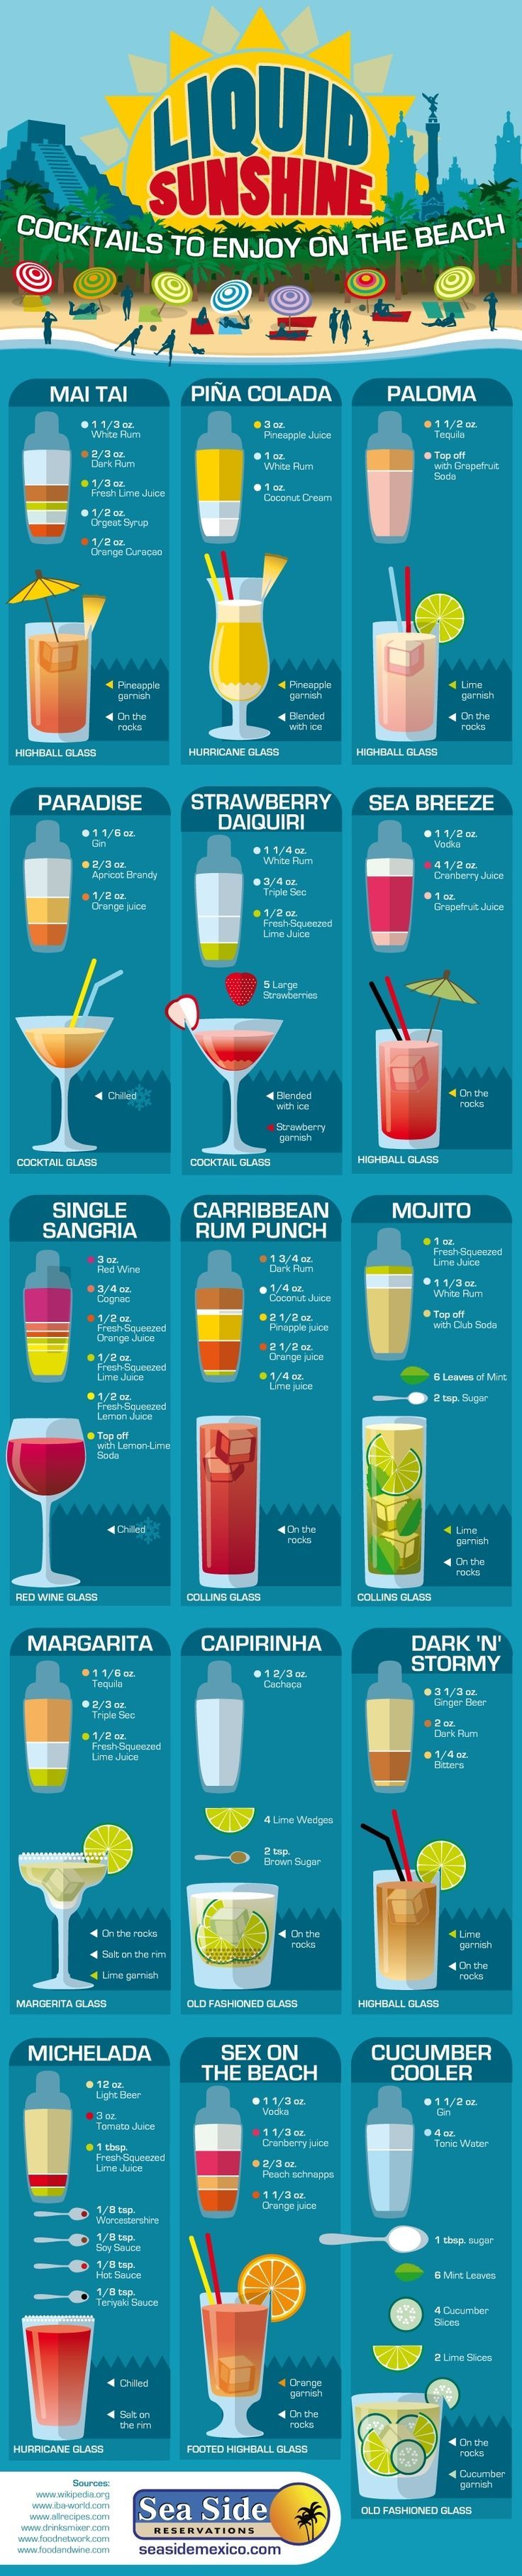 15 Cocktails Perfect For The Beach, How To Make Them: